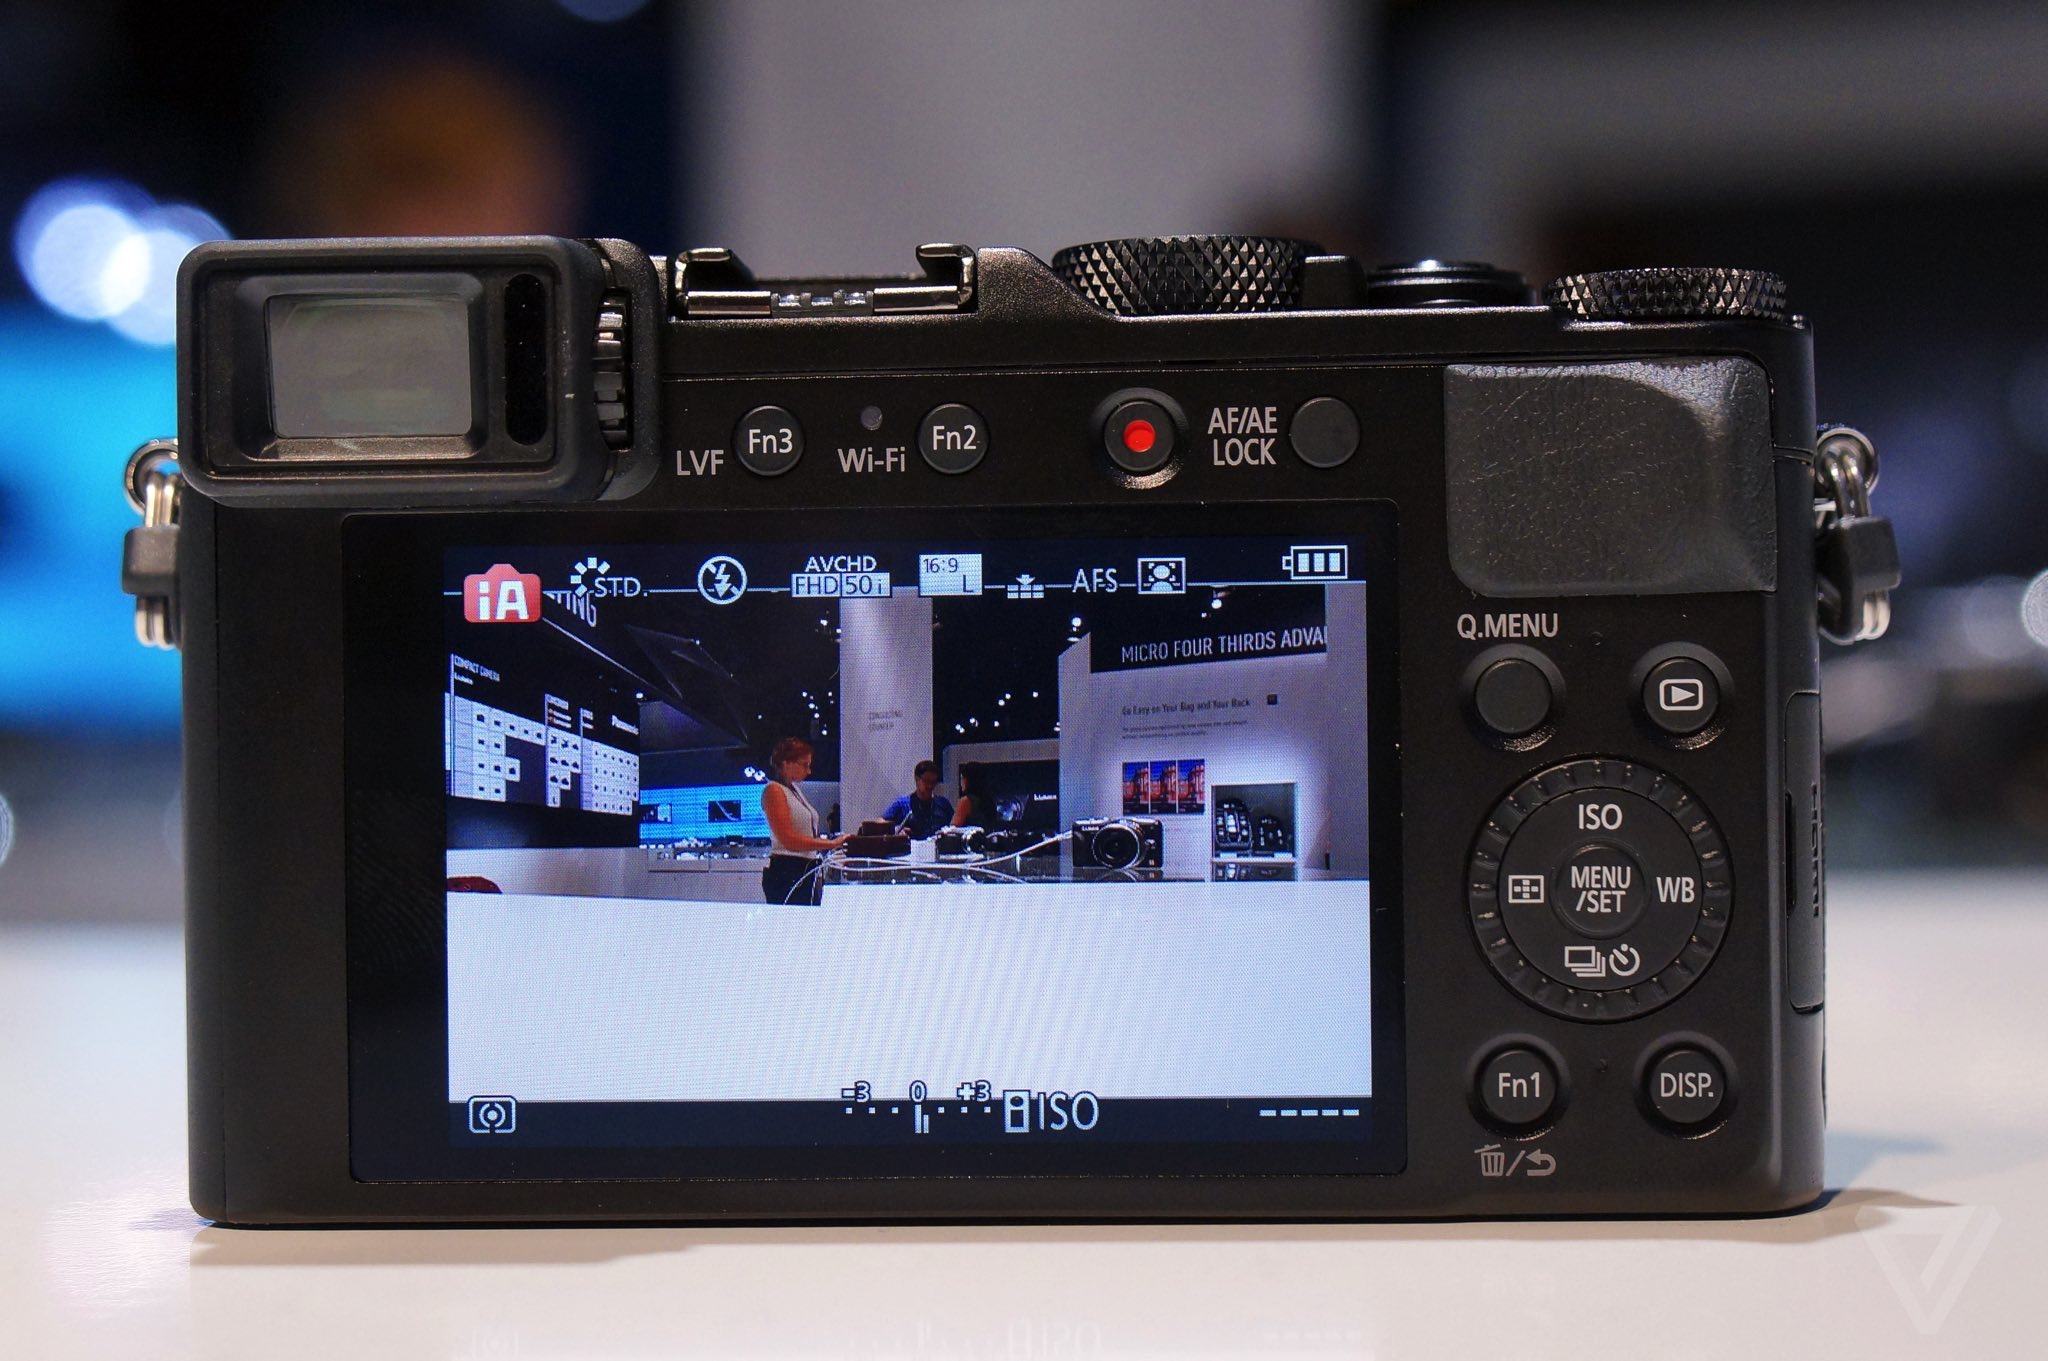 Panasonic's LX100 camera isn't quite as lovely as it looks